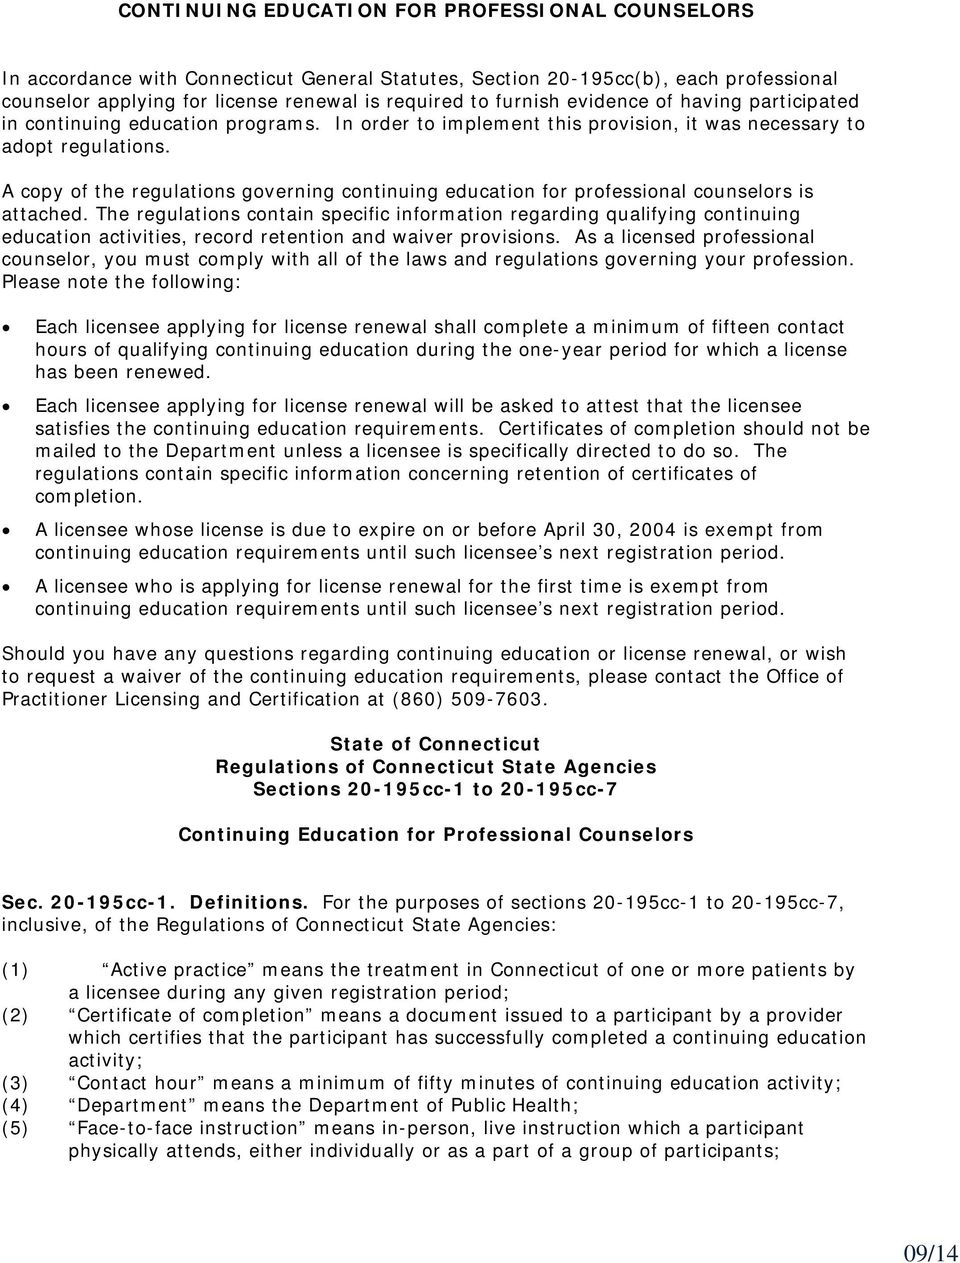 A copy of the regulations governing continuing education for professional counselors is attached.